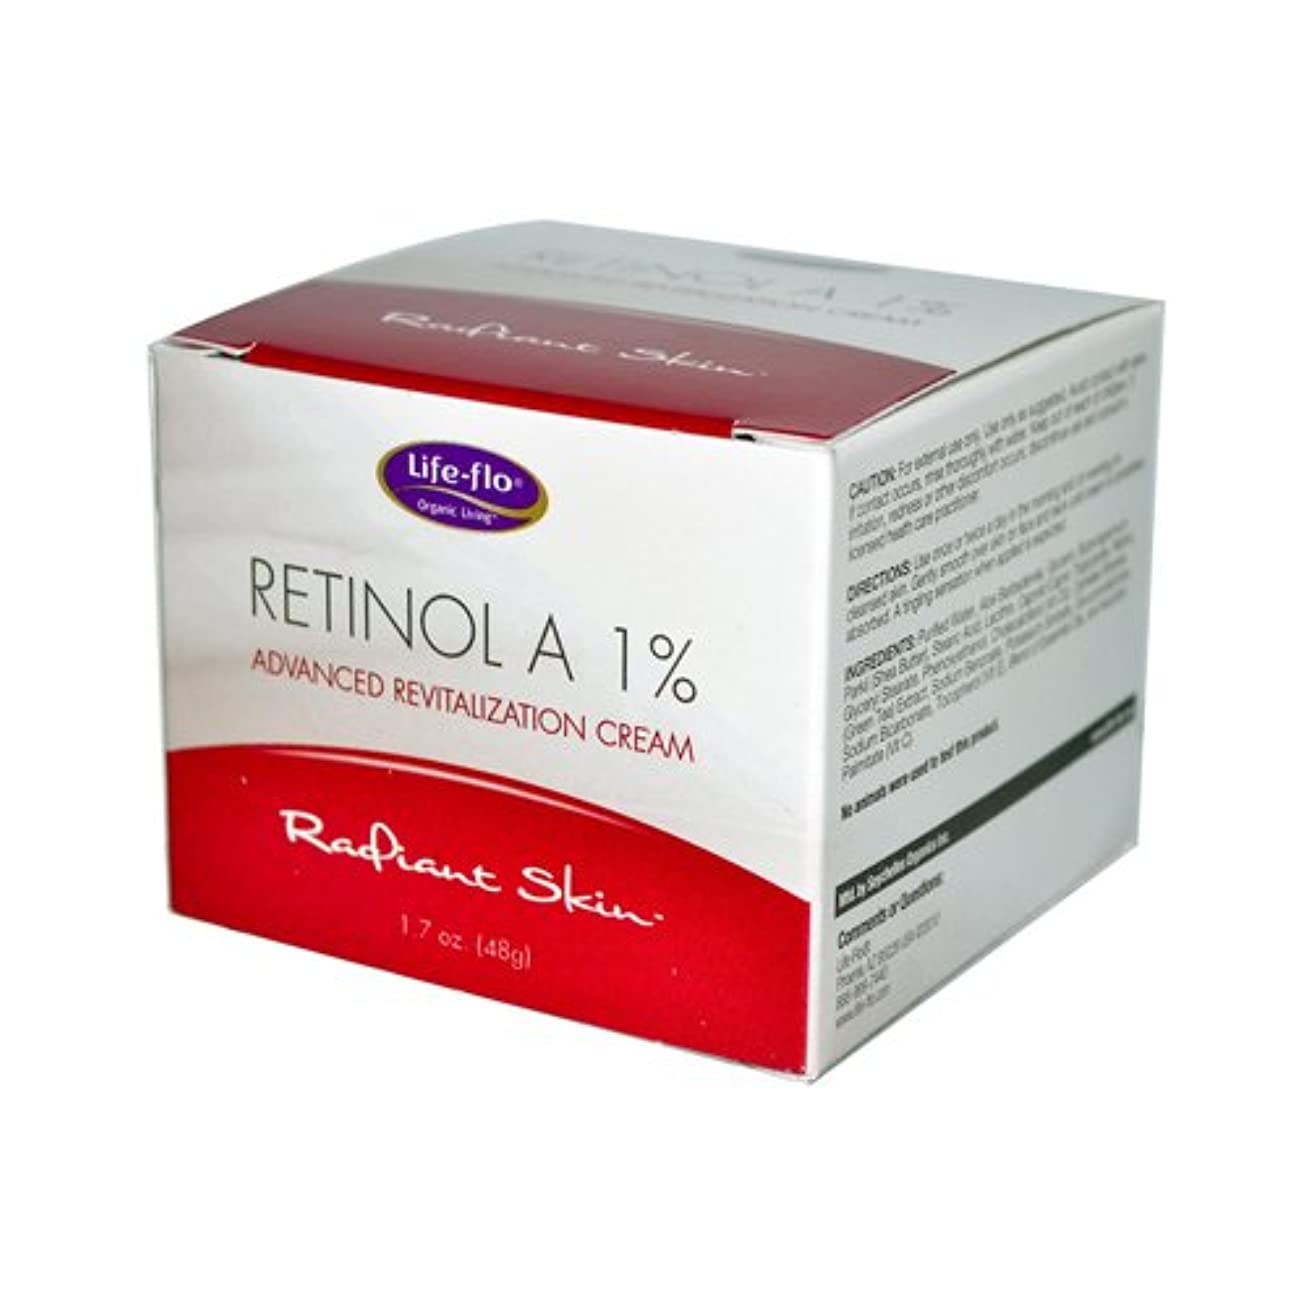 定期的灌漑ナラーバー海外直送品 Life-Flo Retinol A 1% Advanced Revitalization Cream, 1.7 oz